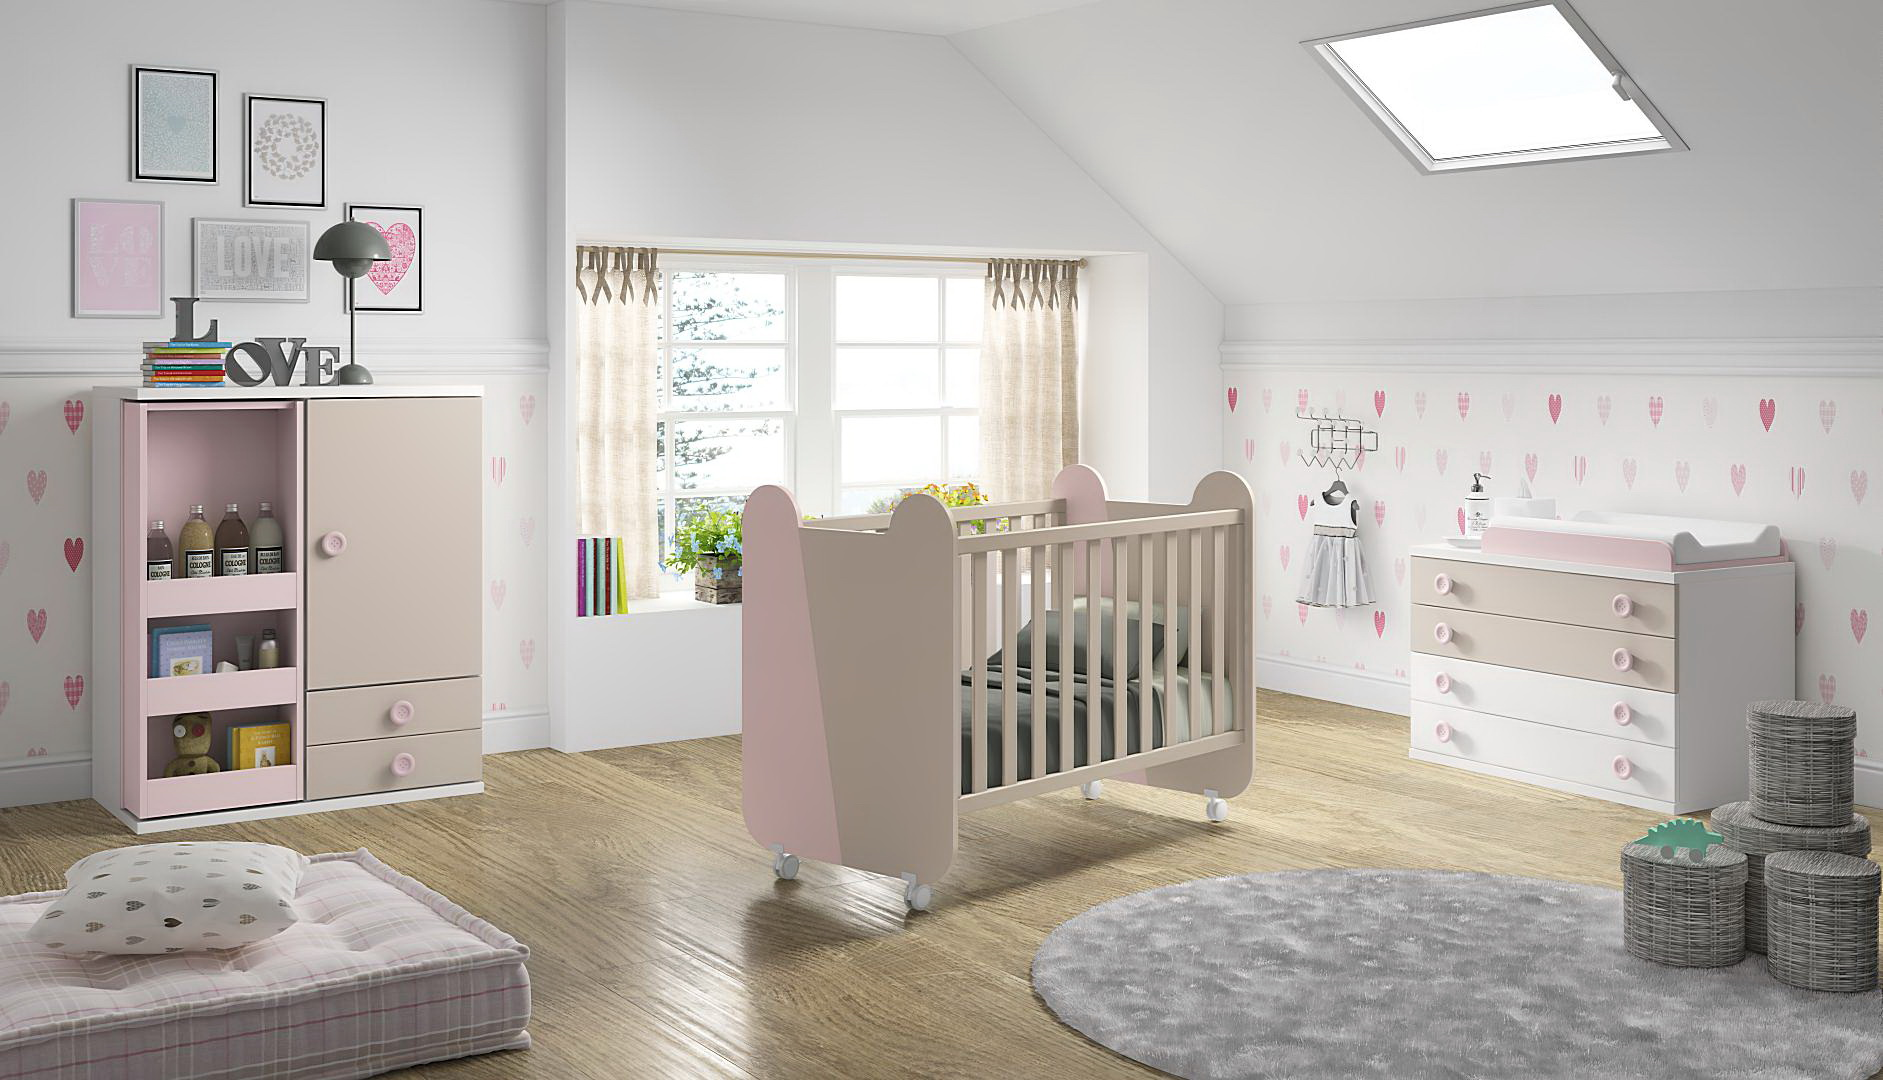 SMILE Infantiles by Glicerio Chaves - Muebles ANTOÑÁN